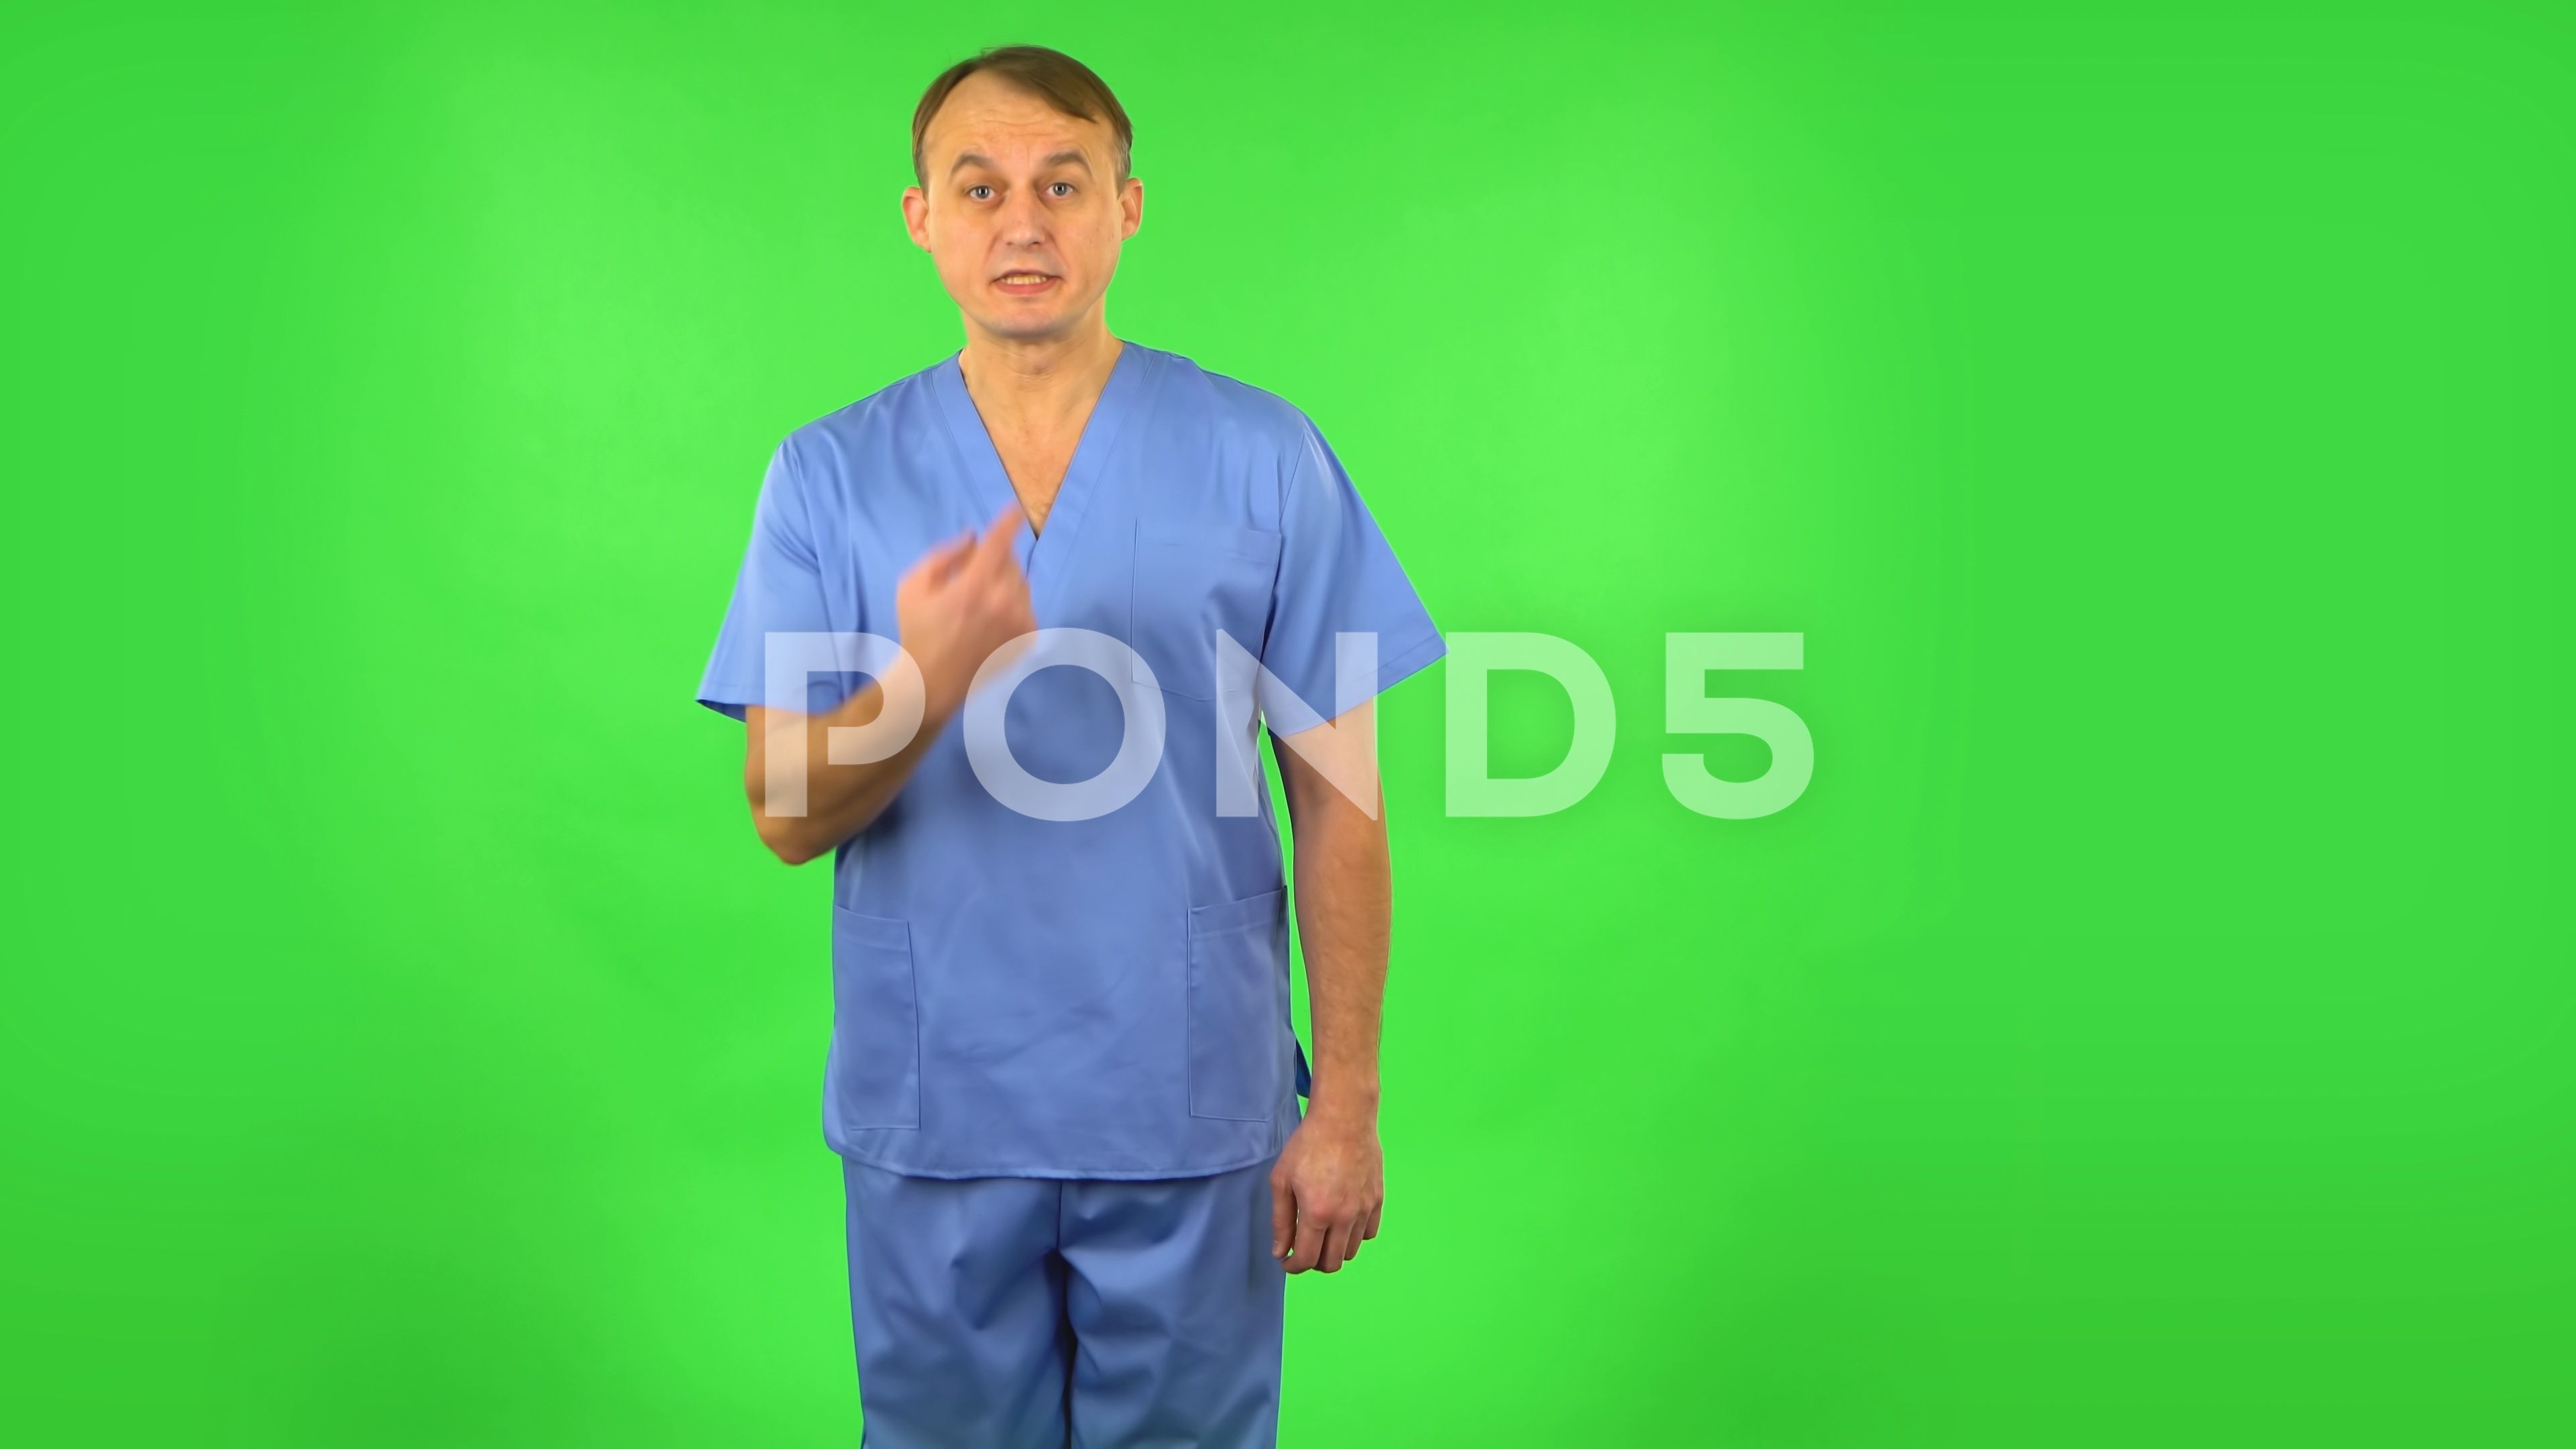 Medical man throwing up hands expressing he is innocent, twists his finger at #AD ,#hands#expressing#throwing#Medical